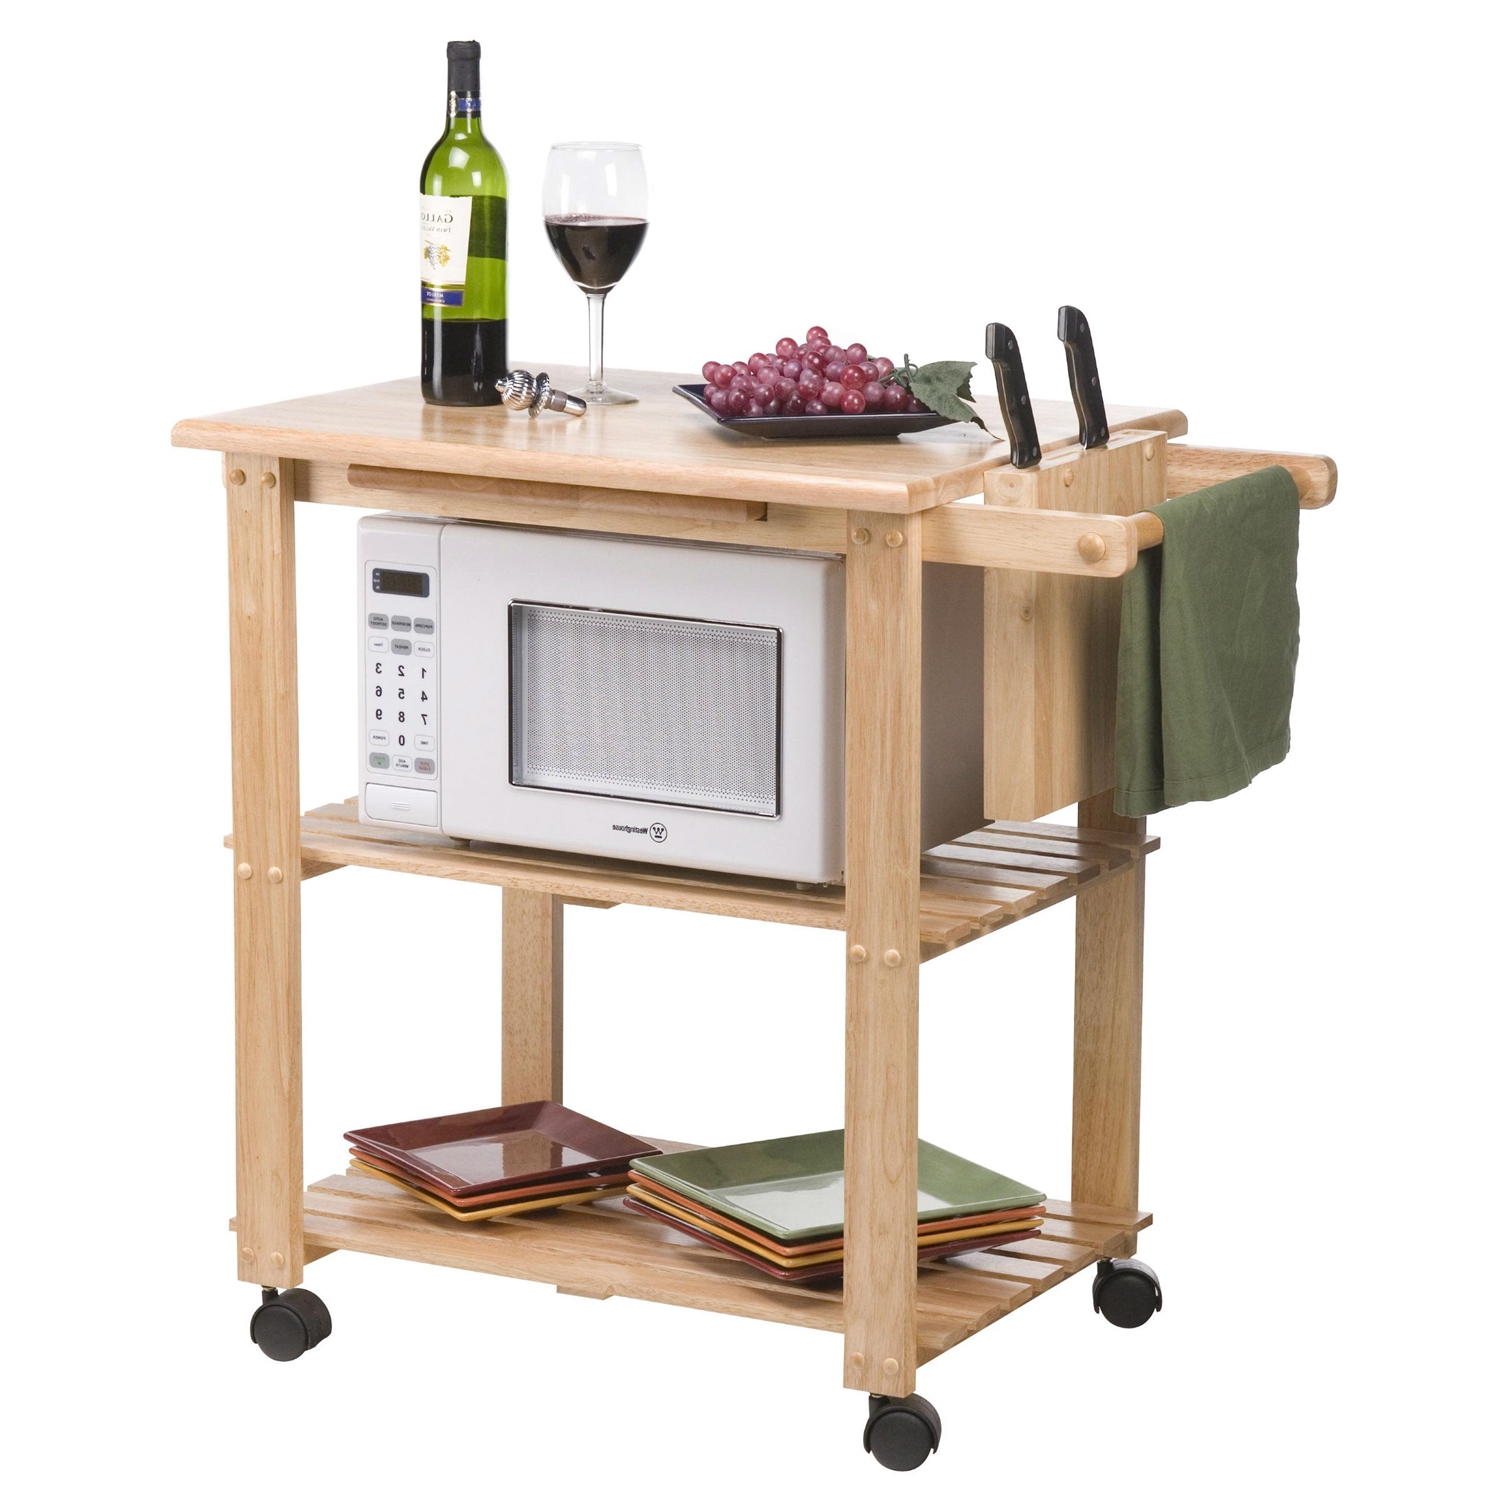 solid wood kitchen utility microwave cart with pull out cutting board